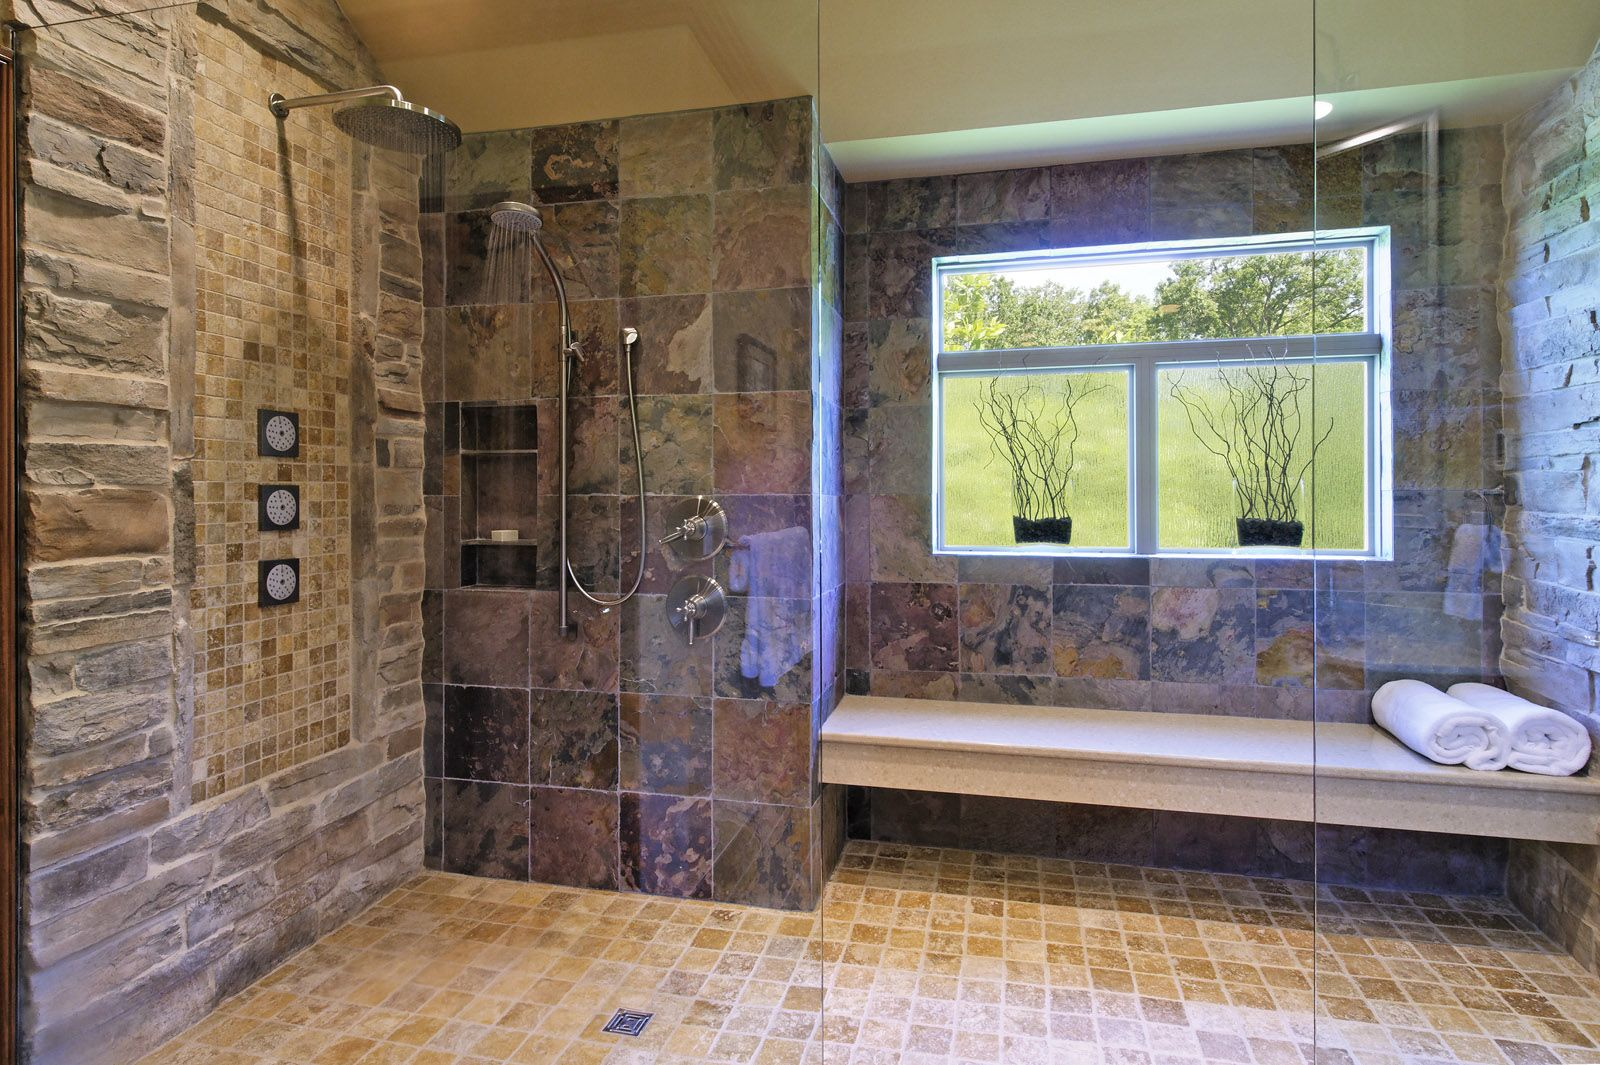 The Bathroom's Coloring Creates A Rustic Lookdesigned And Amusing Bathroom Design Columbus Ohio 2018